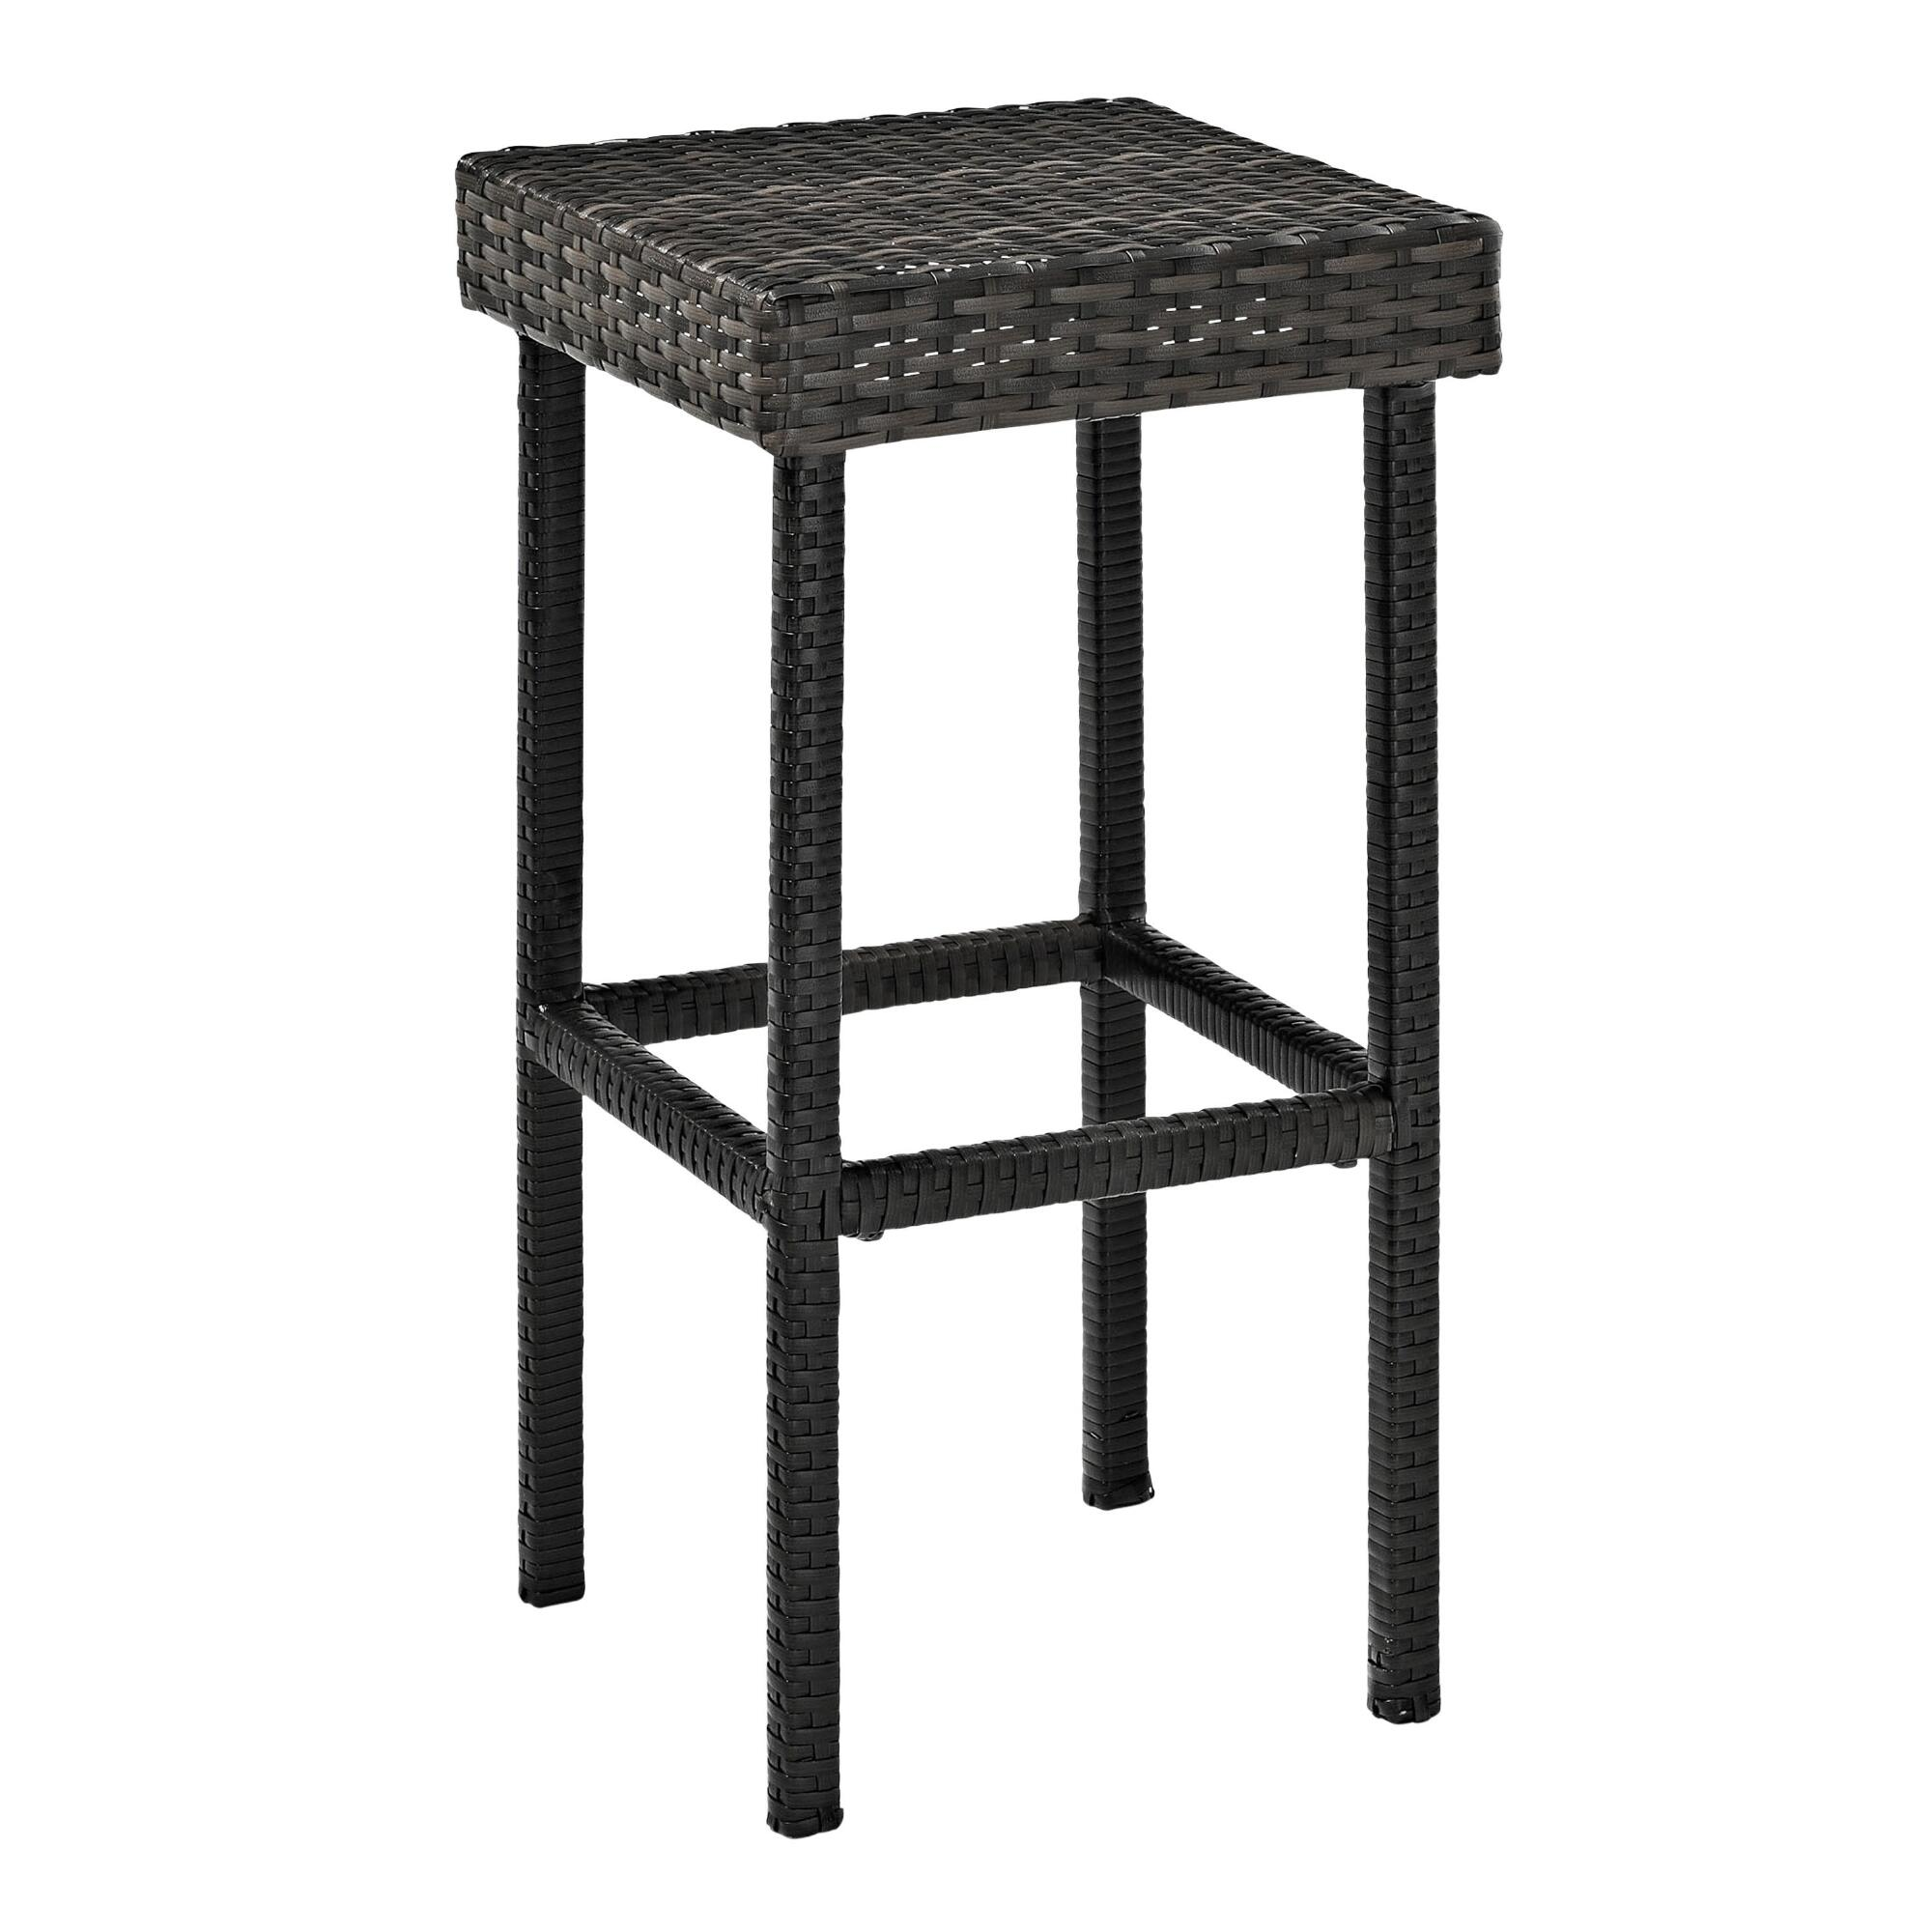 Gray All Weather Wicker Pinamar Outdoor Patio Barstools Set of 2 by World Market